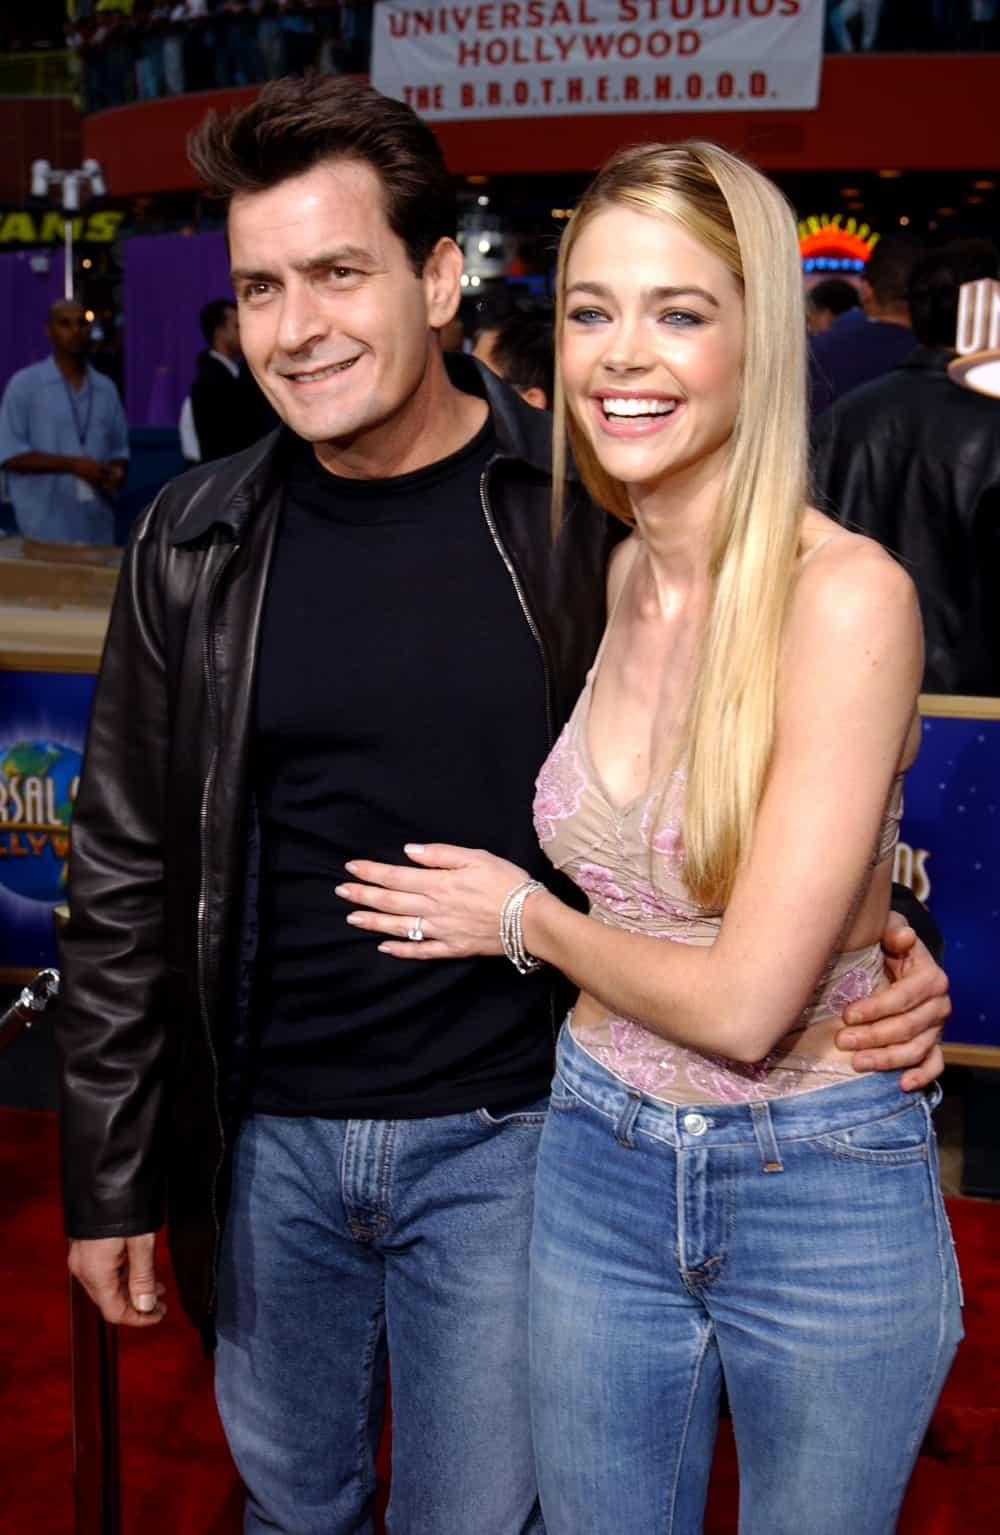 Charlie Sheen and Denise Richards World Premiere Of Undercover Brother